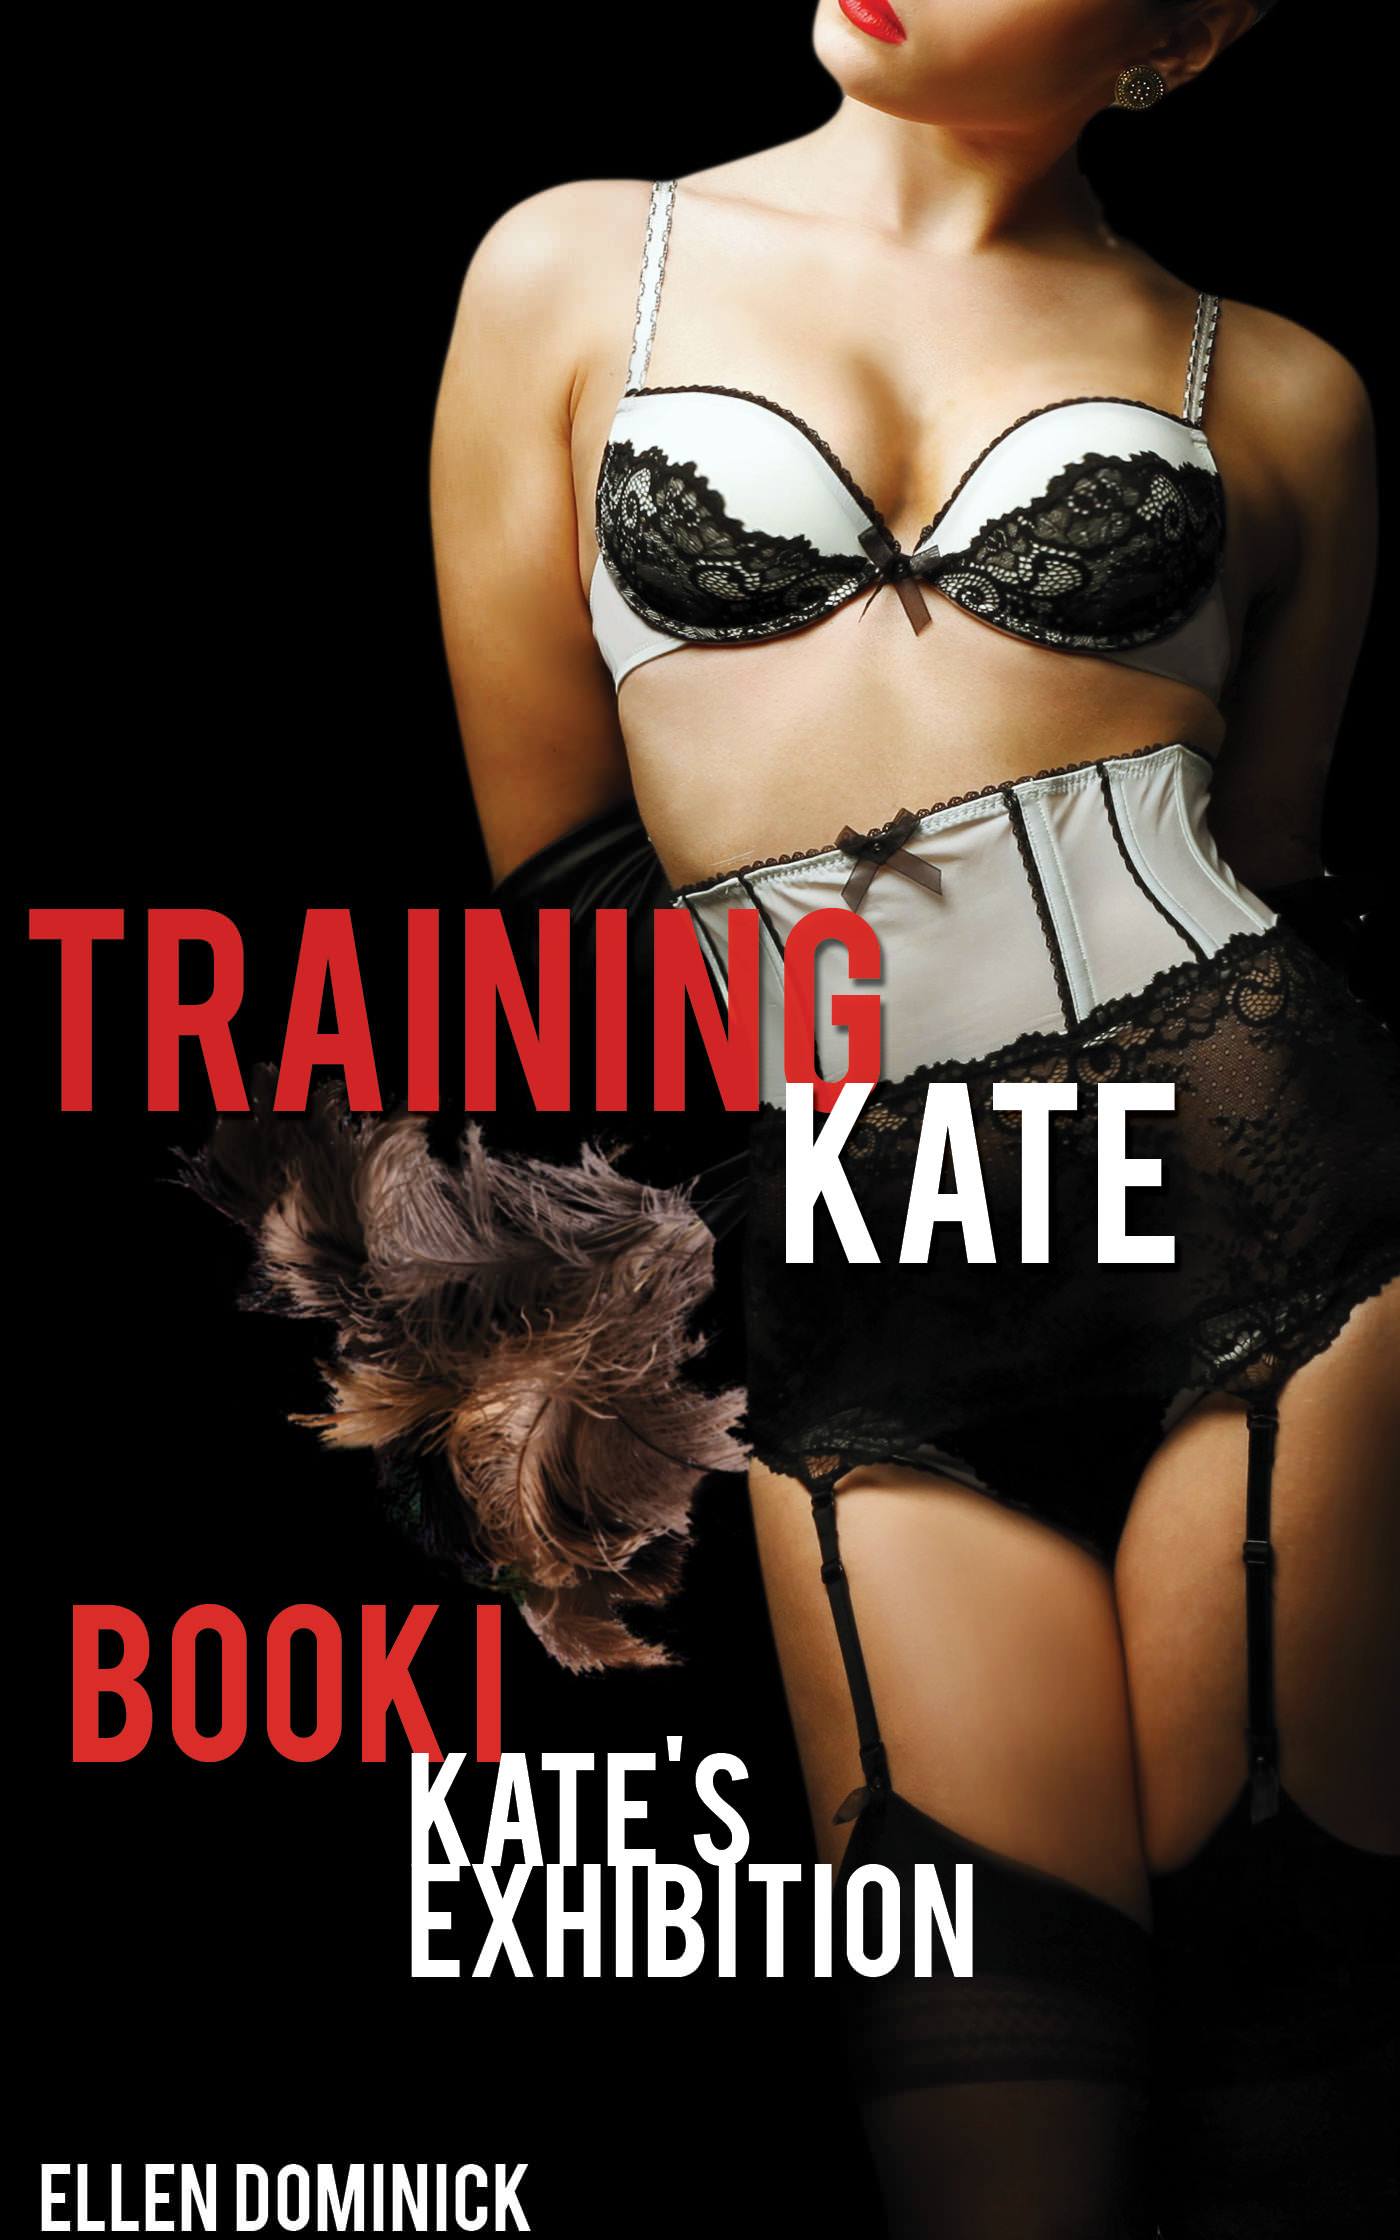 Kate's exhibition (training kate: the submission of a maid)